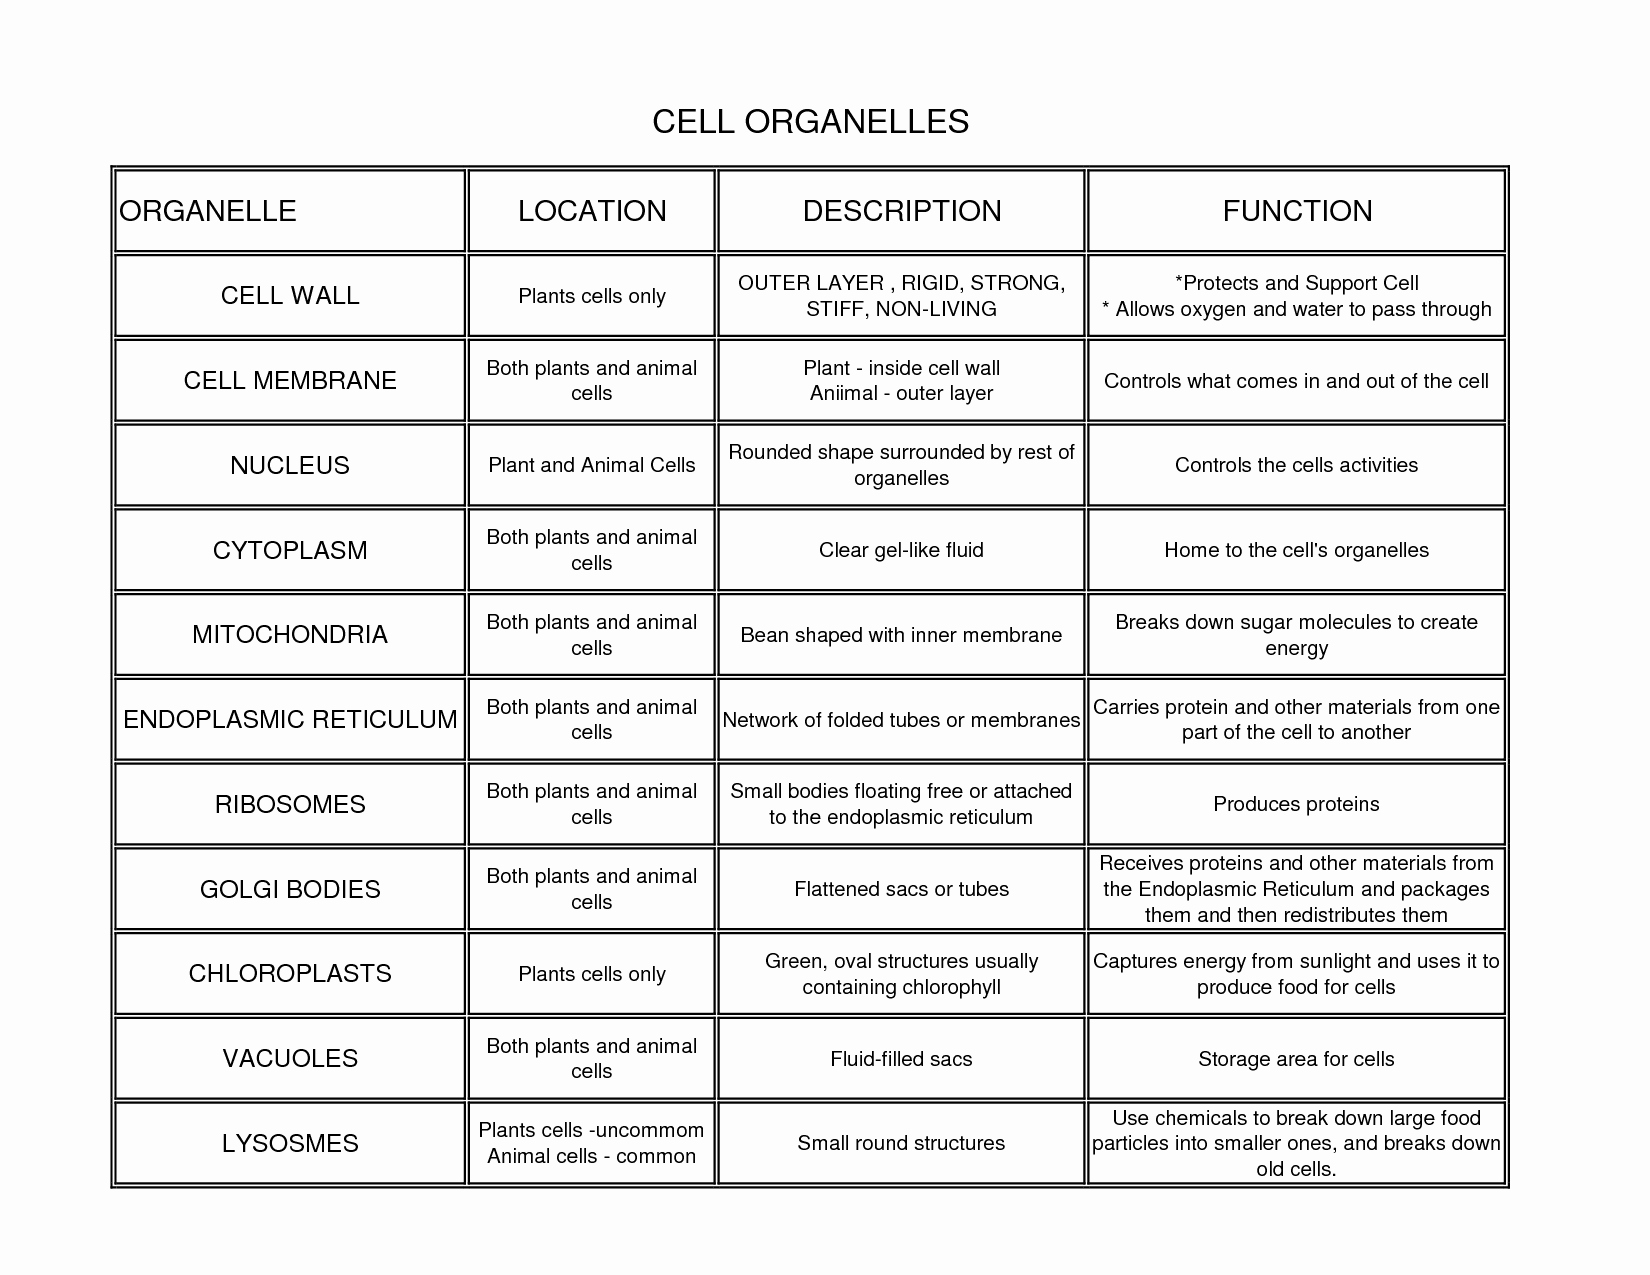 Function Of the organelles Worksheet Inspirational Biology 1 2 Final Exam Cheat Sheet by El Go650